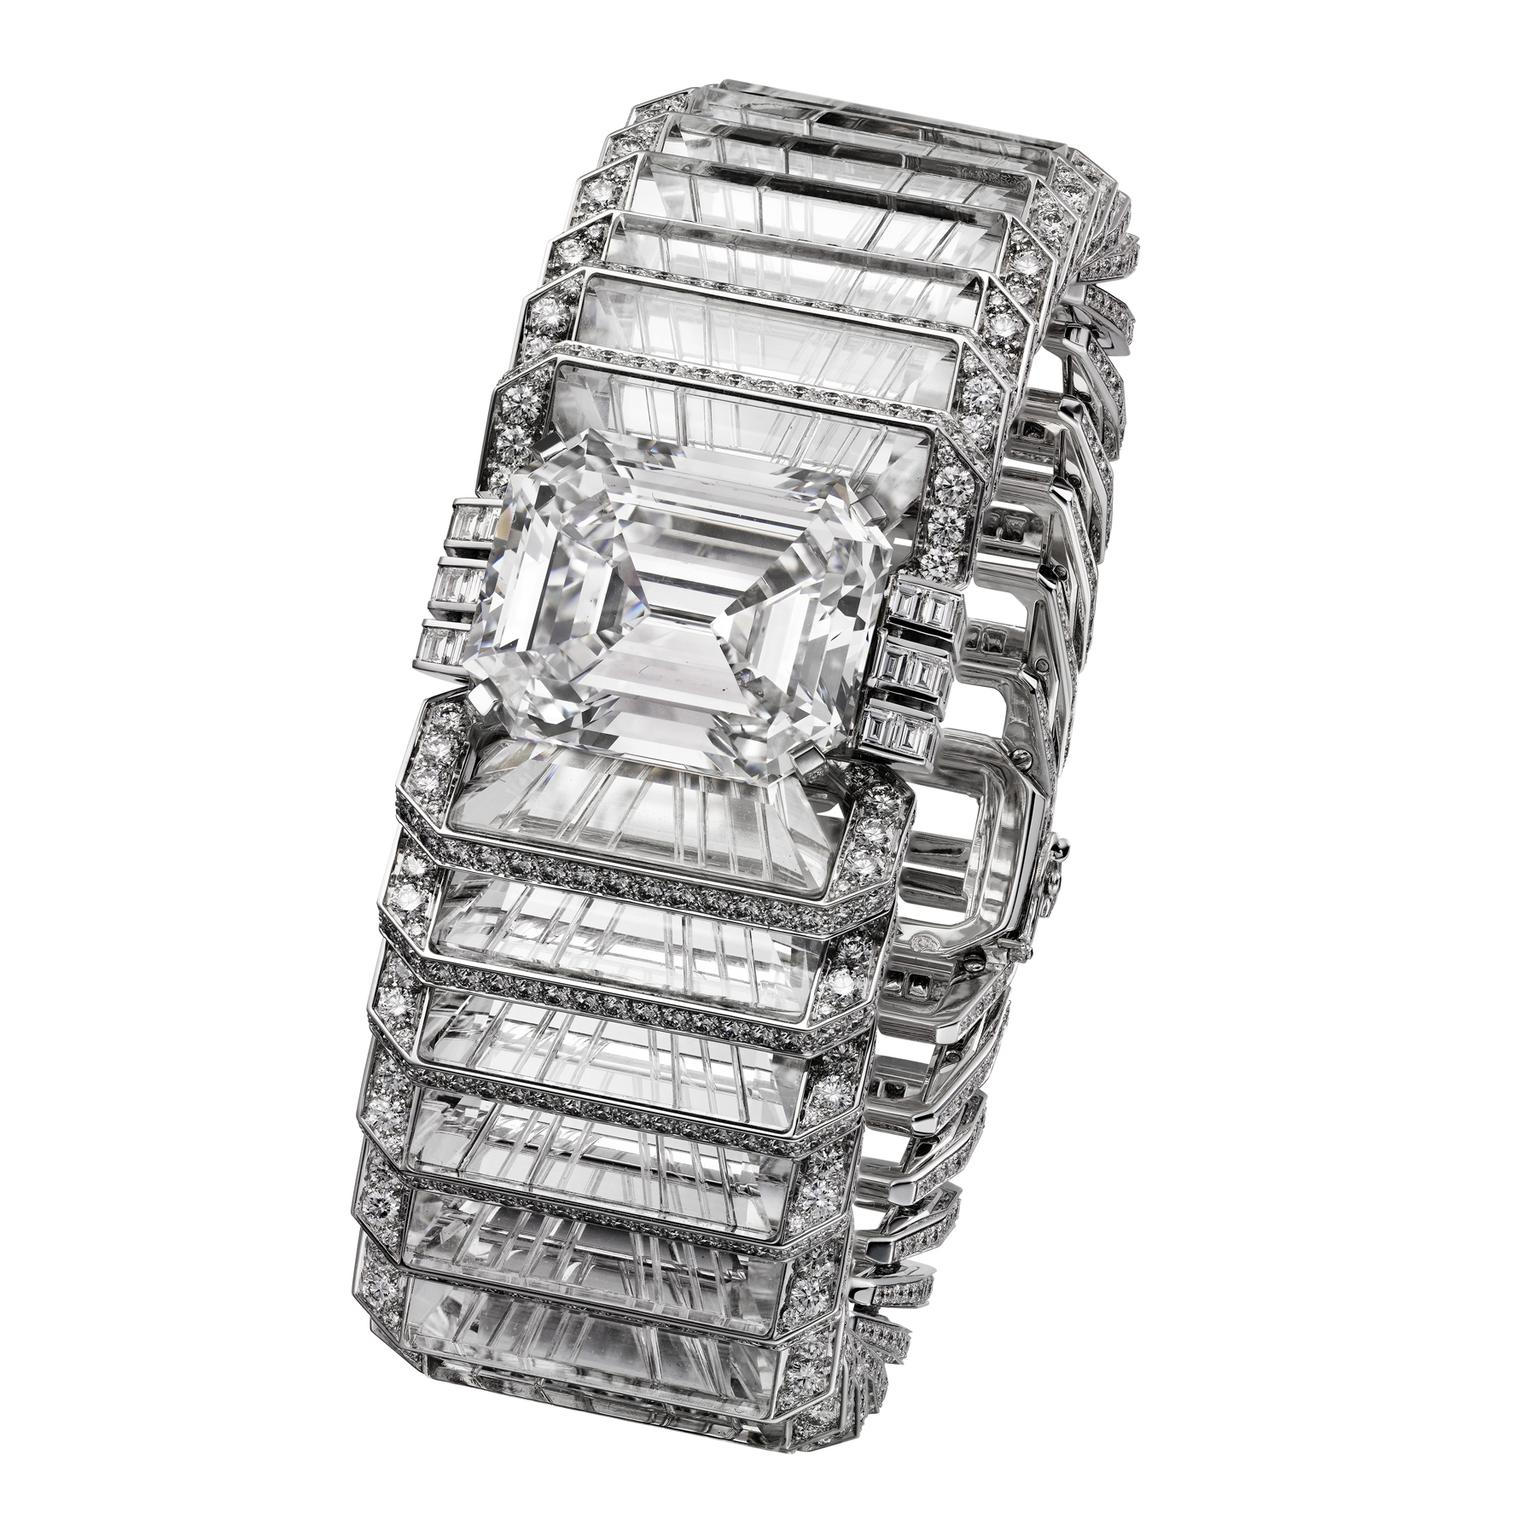 Cartier Magicien Illumination diamond bracelet